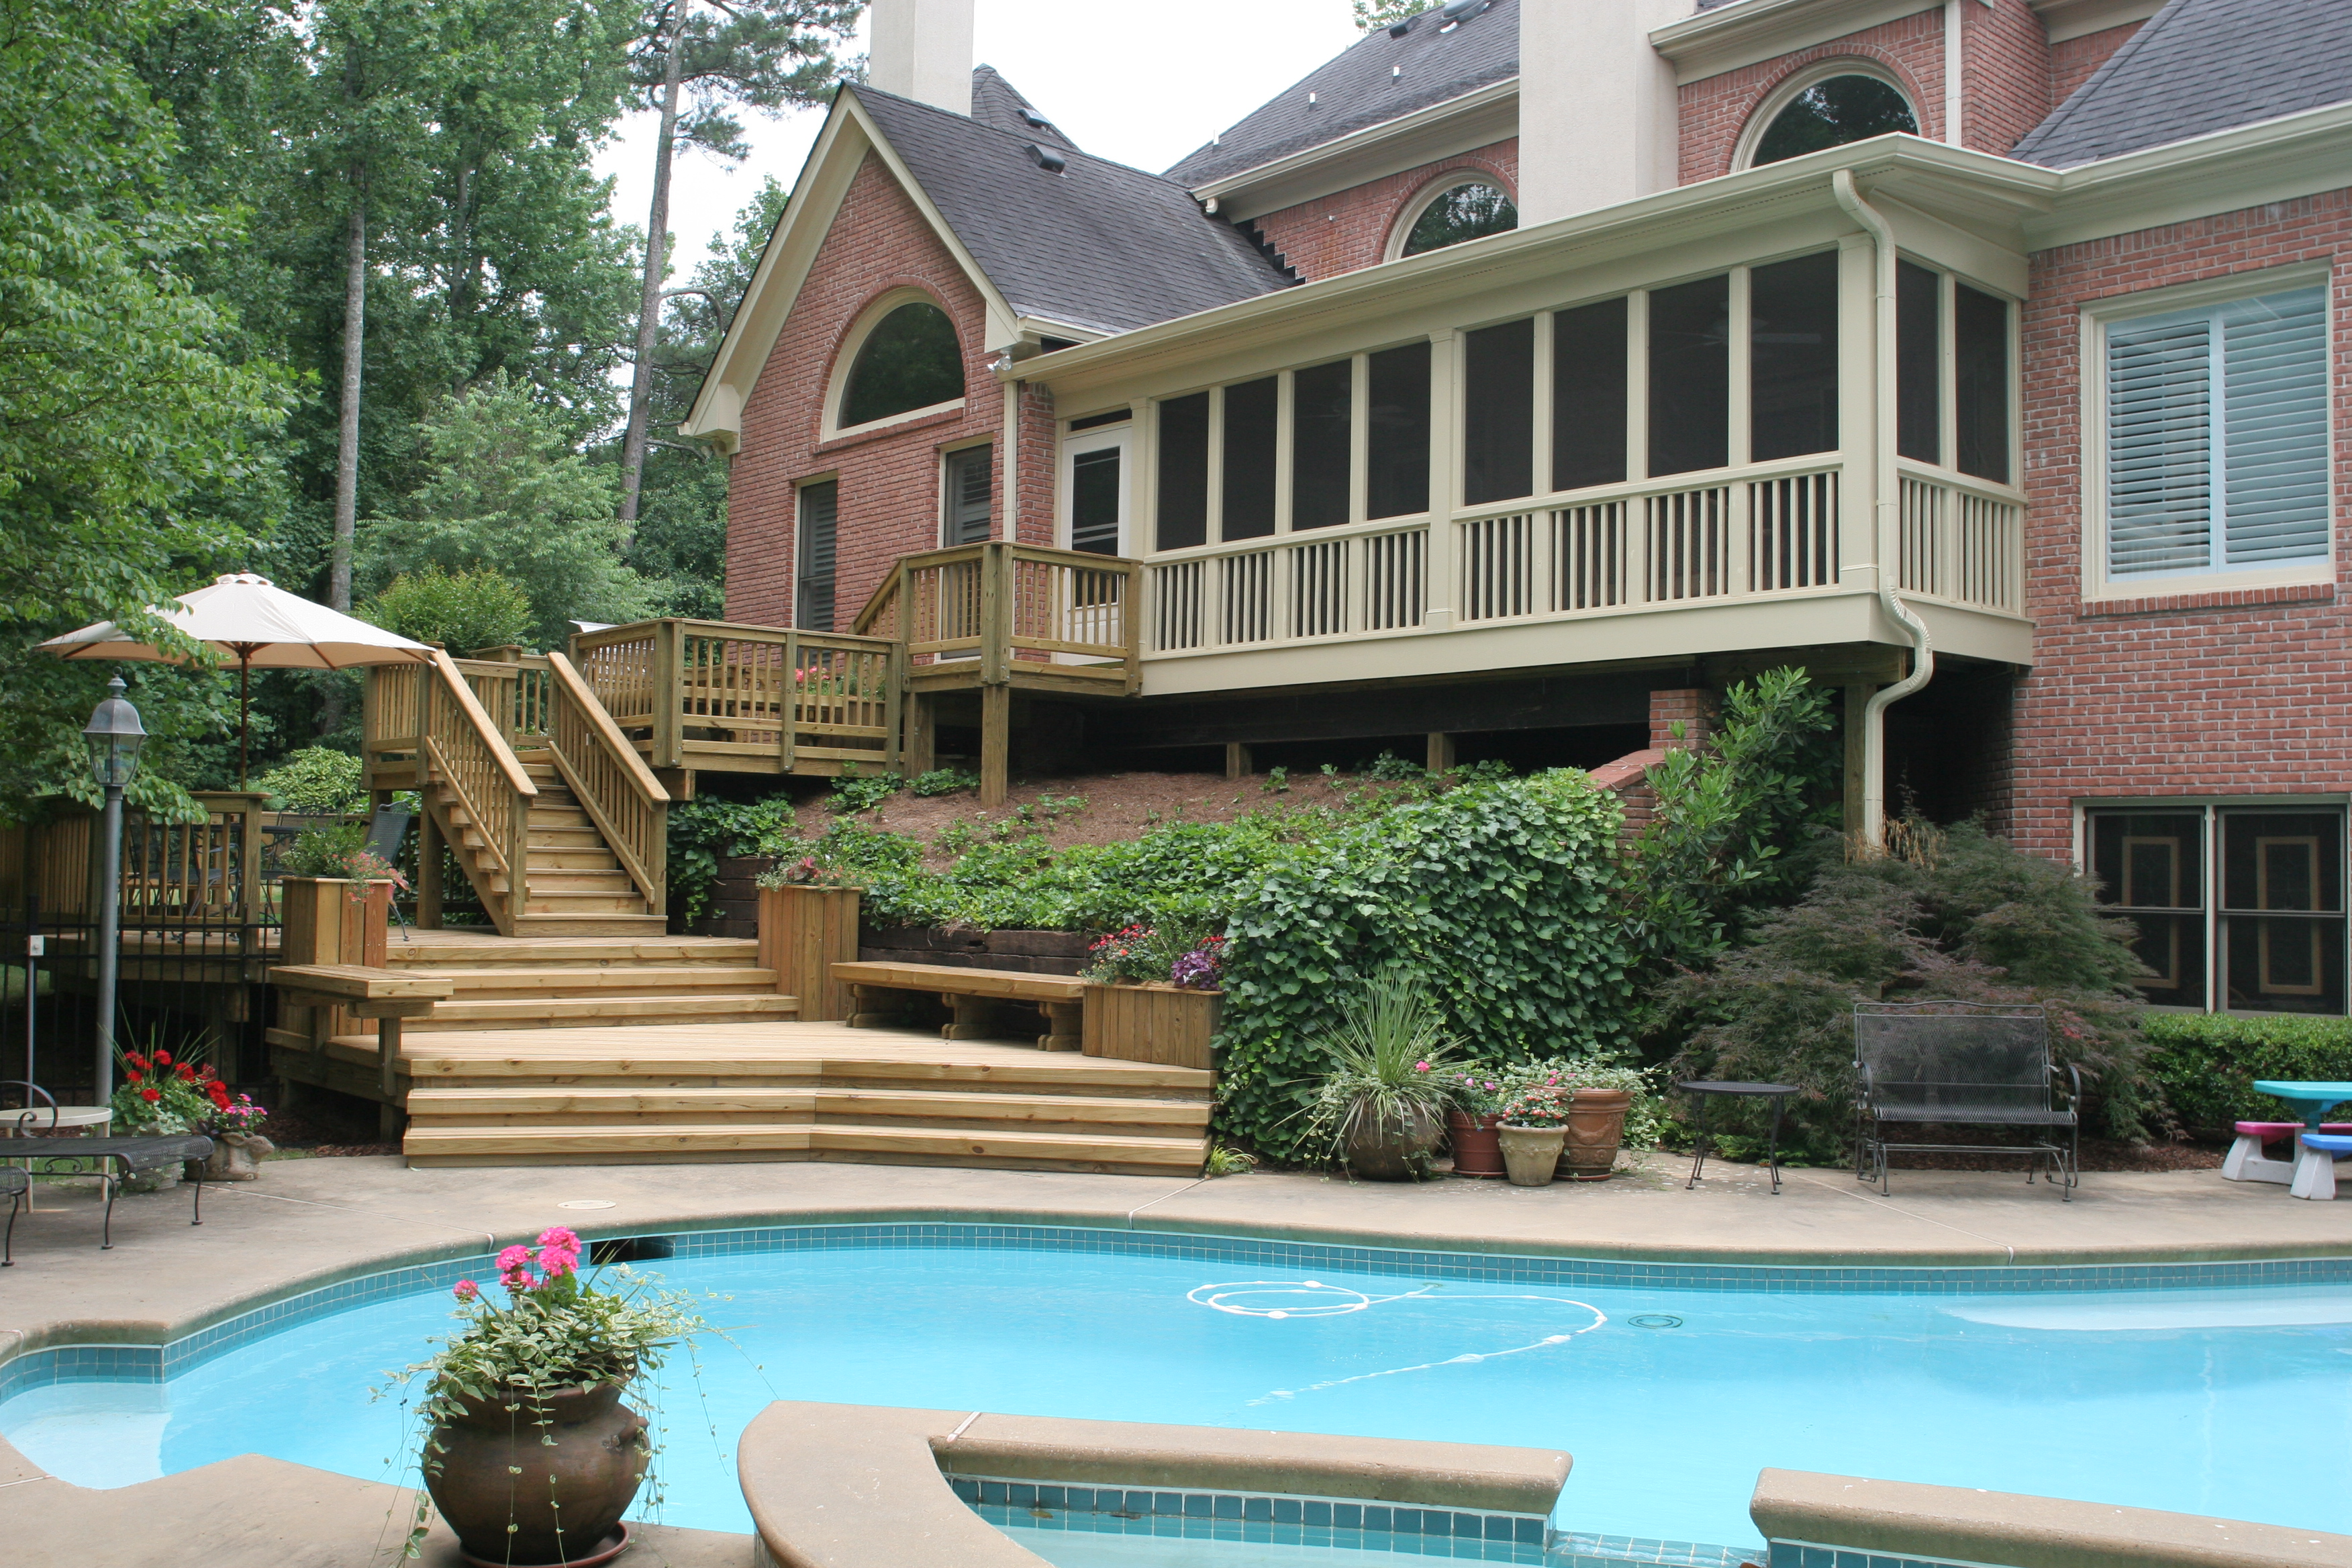 Multilevel Deck Design Ideas by Archadeck | St. Louis ... on Patio With Deck Ideas id=64650